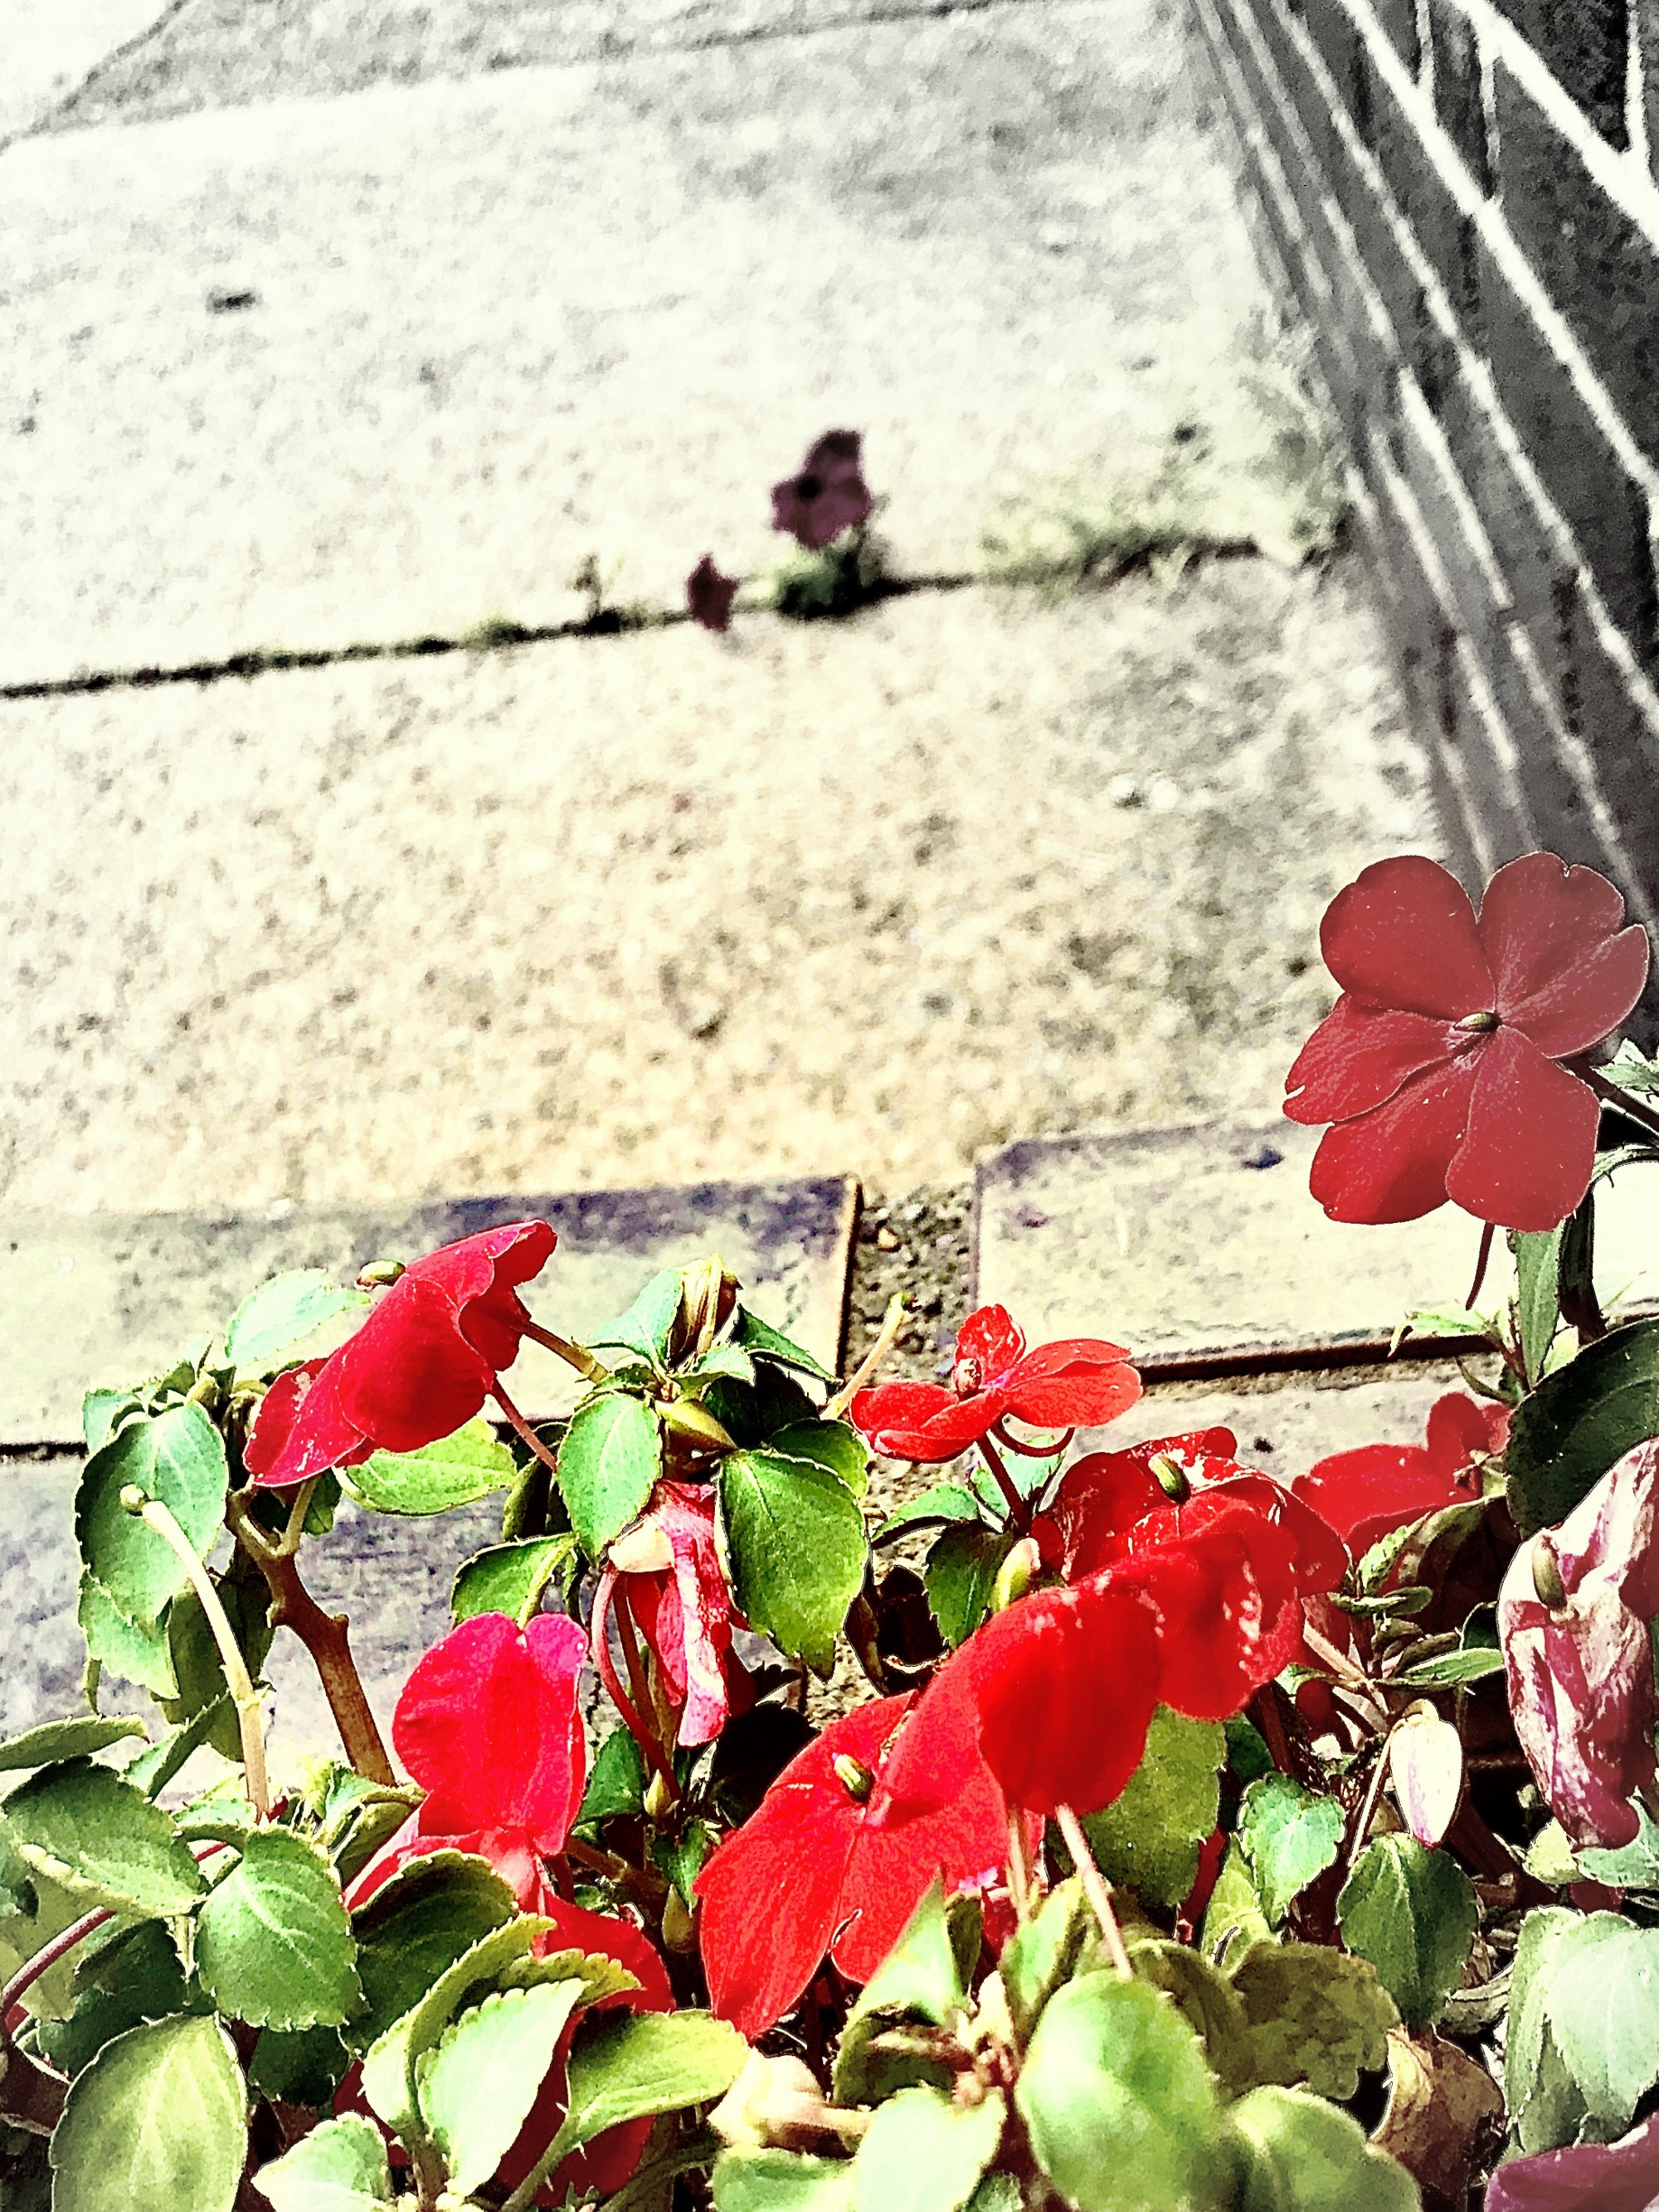 Photograph of a sidewalk flower box with red petunias the flowers are colored and the rest of the picture is black and white.